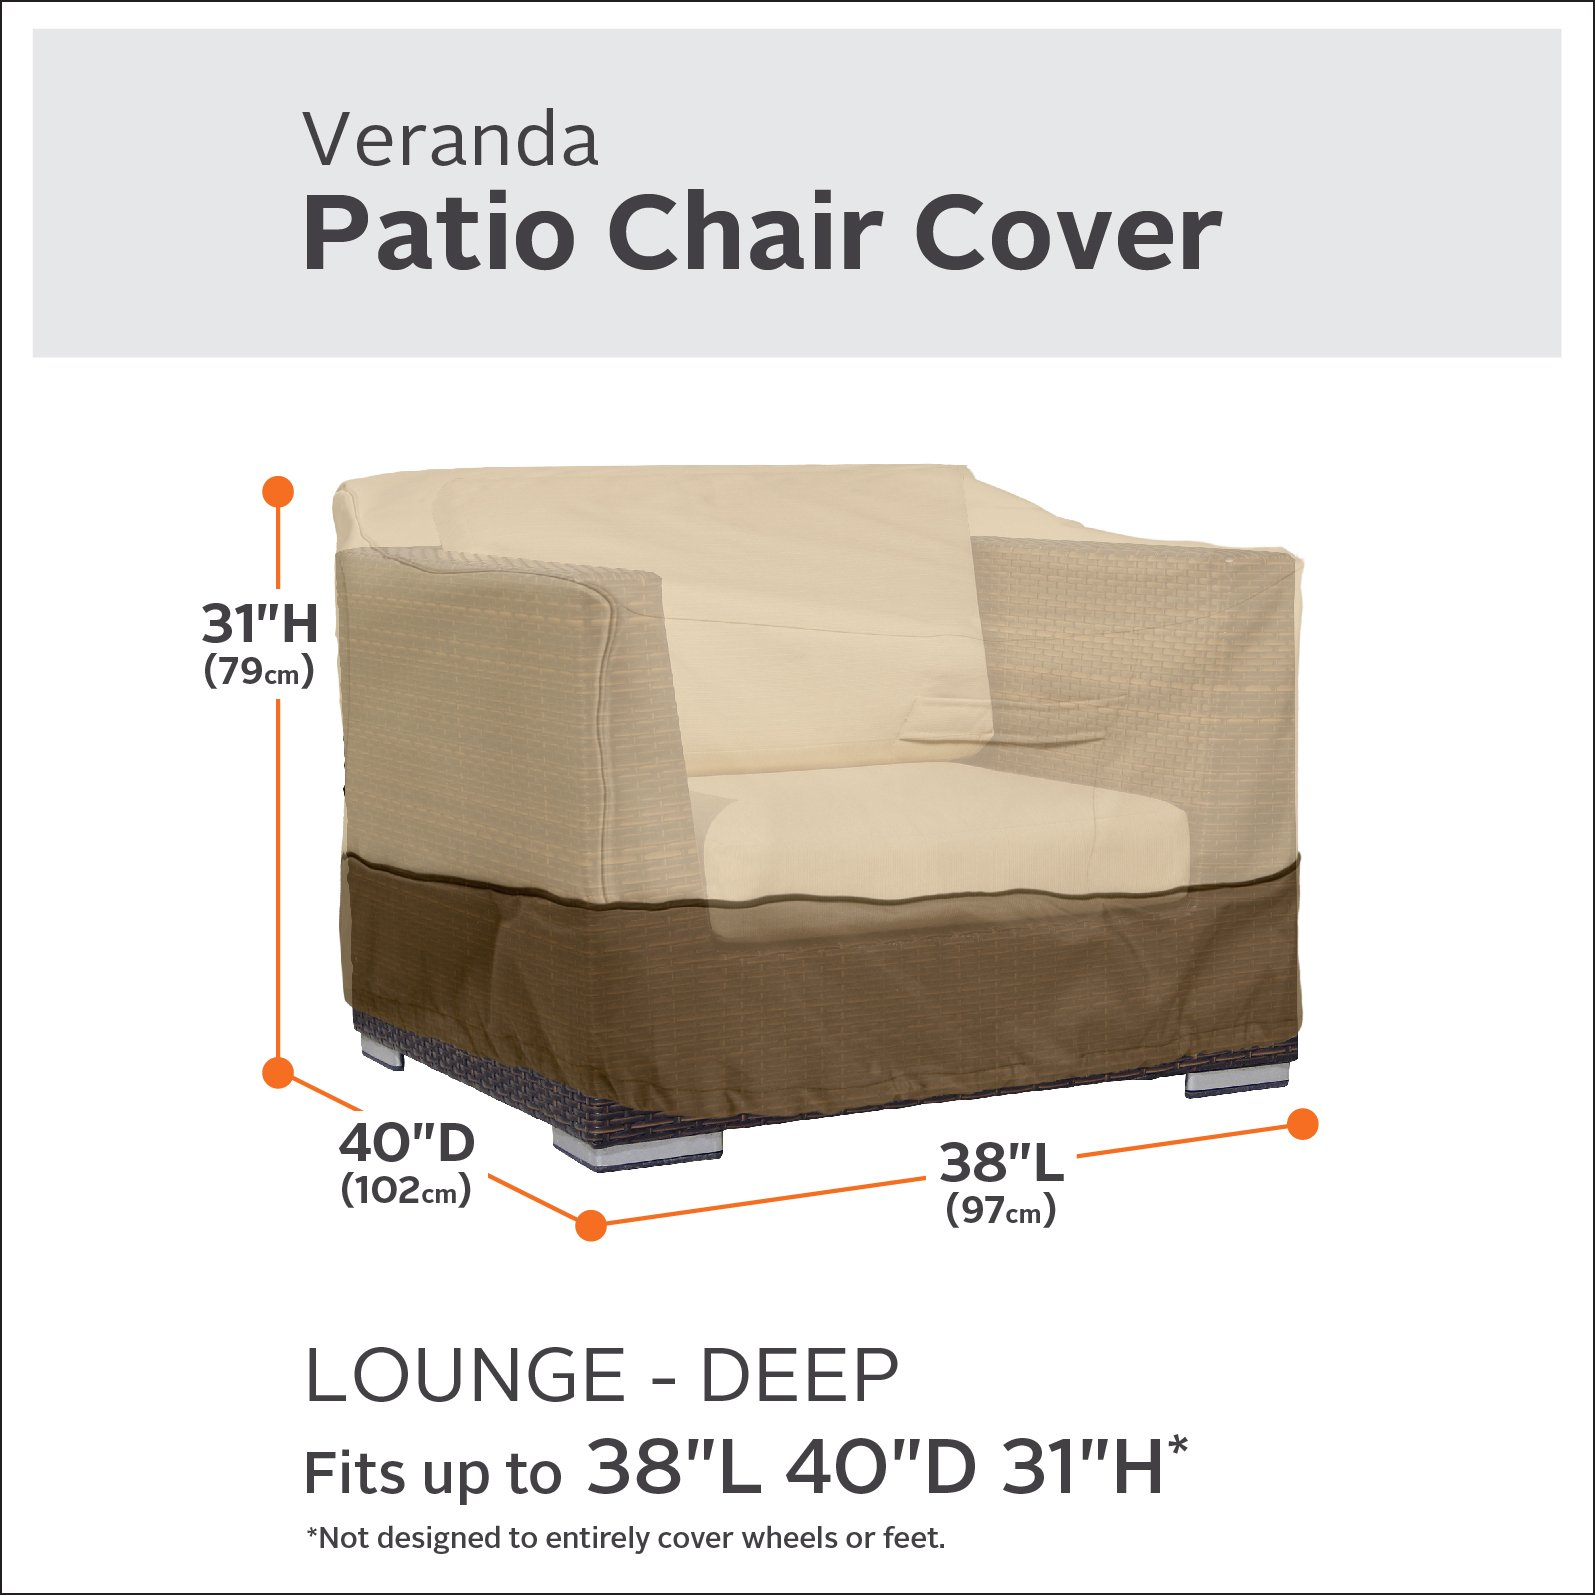 Classic Accessories Veranda Patio Deep Seat Lounge Chair Cover (4-Pack) by Classic Accessories (Image #3)